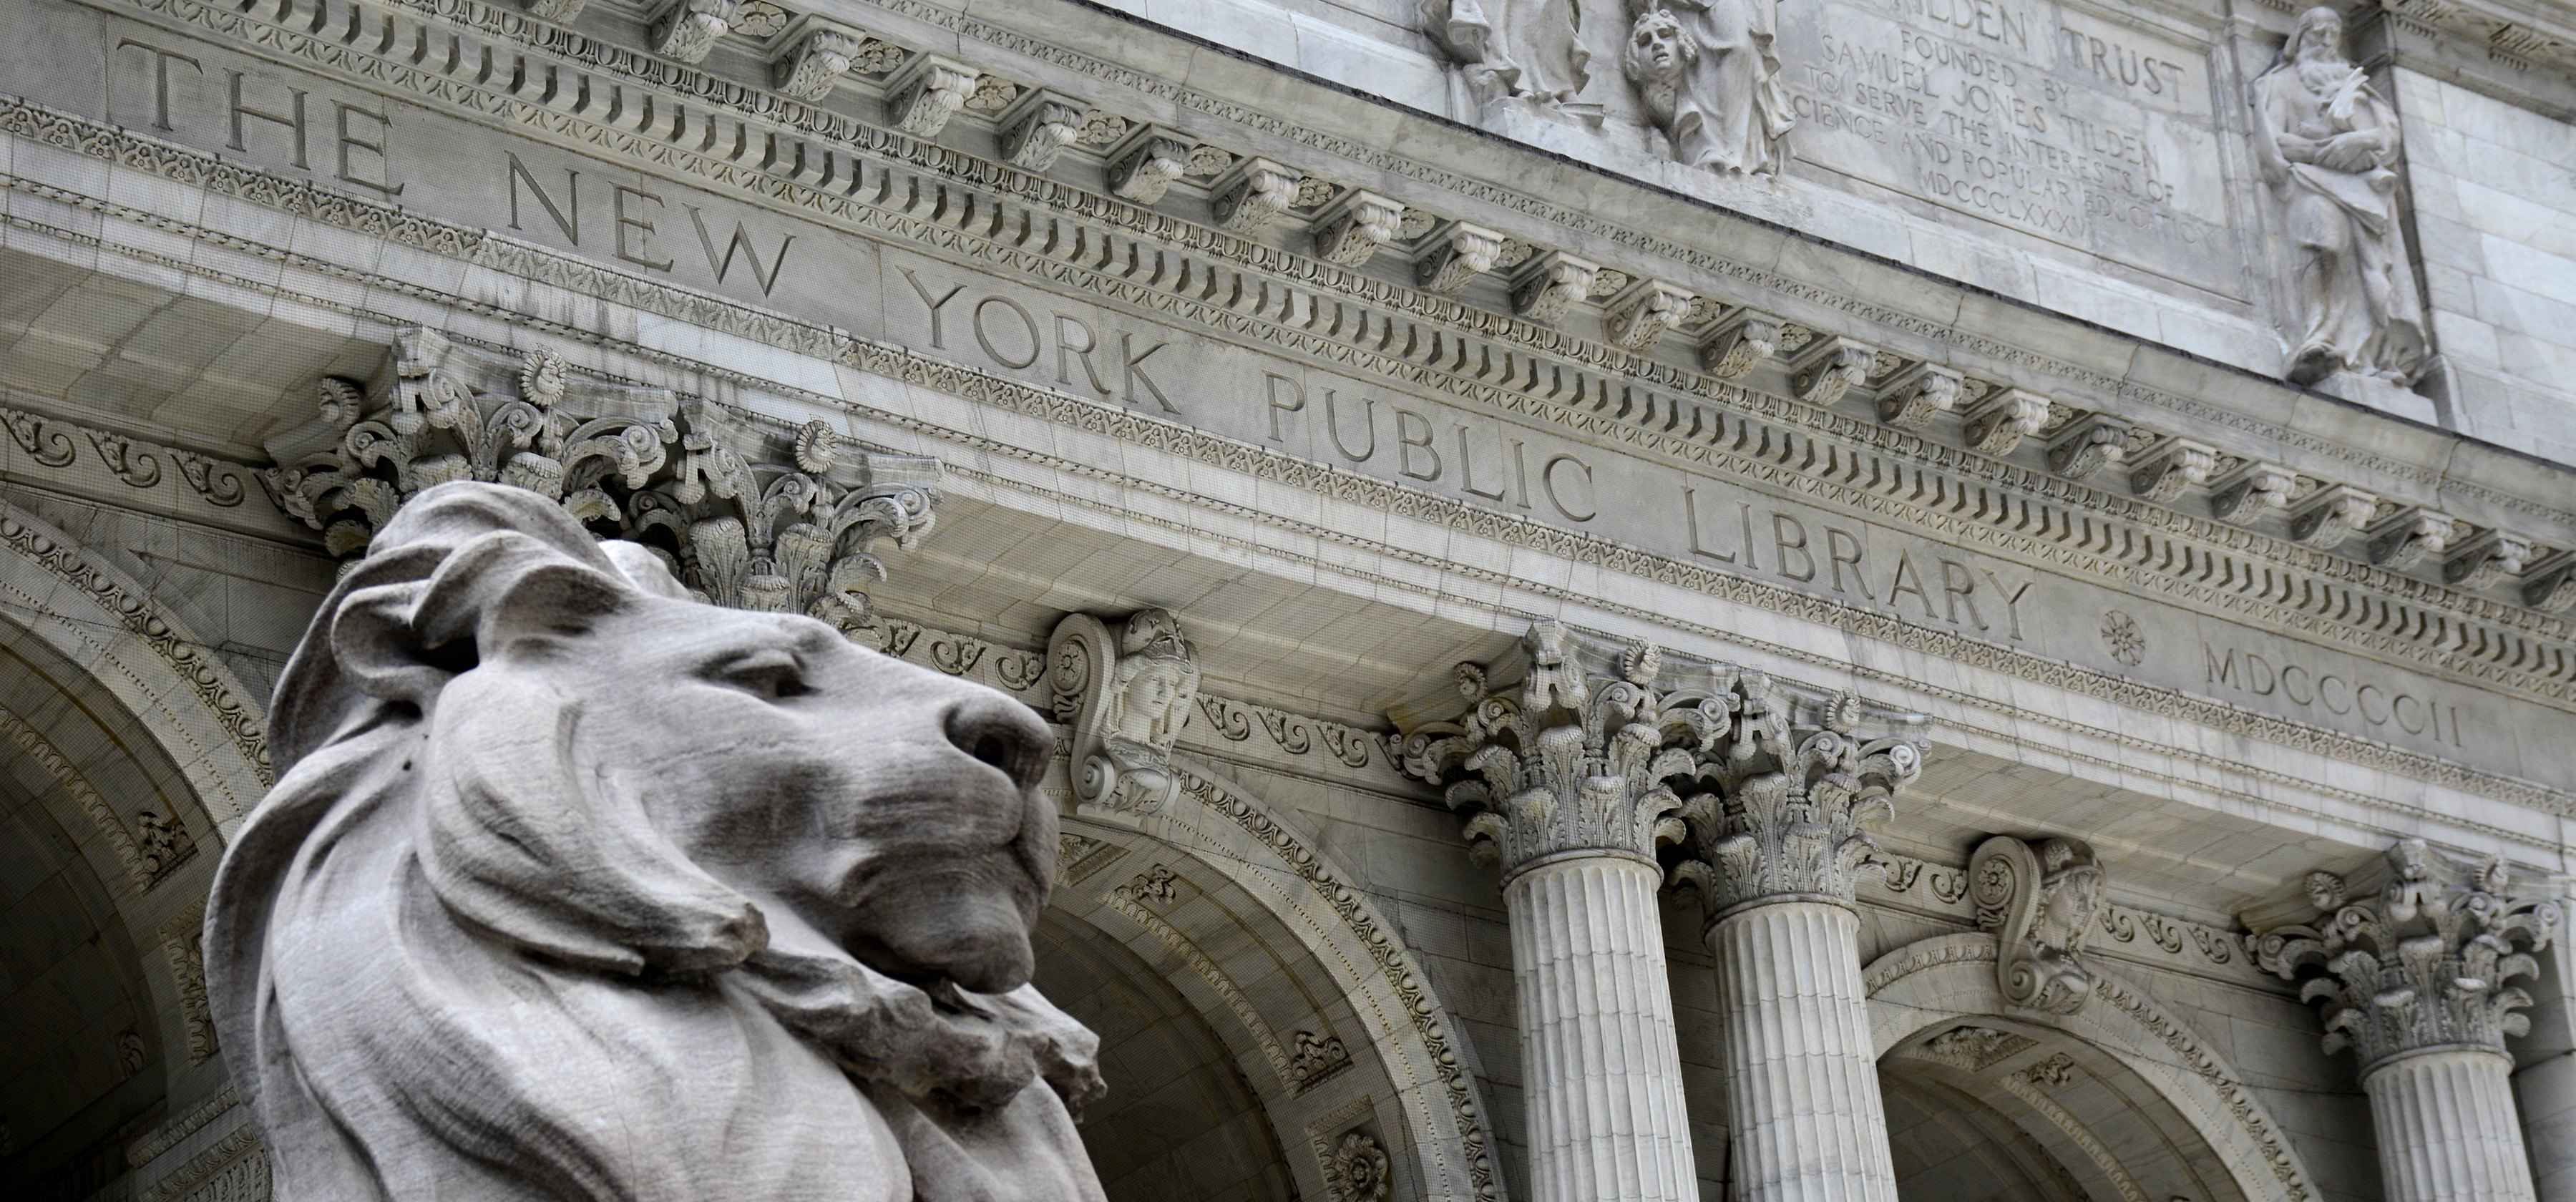 Shortlist for NYPL Young Lions Award Unveiled